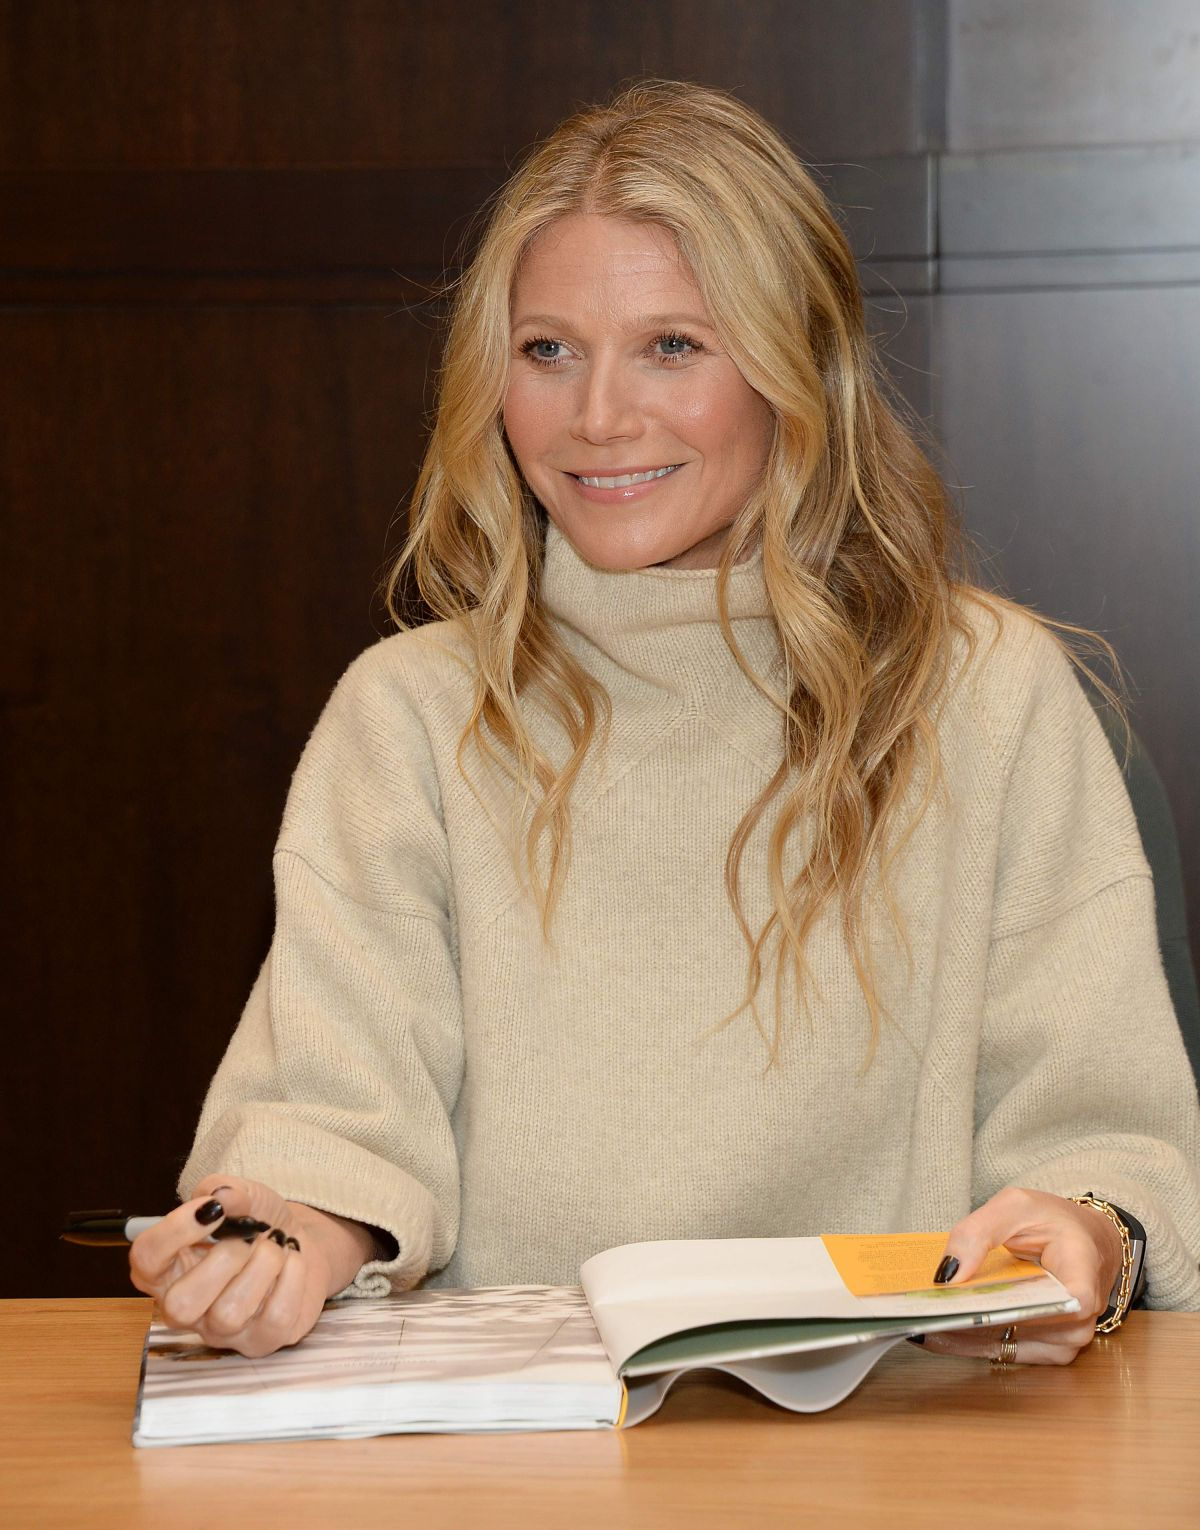 GWYNETH PALTROW at The Clean Plate Eat, Reset, Heal Book